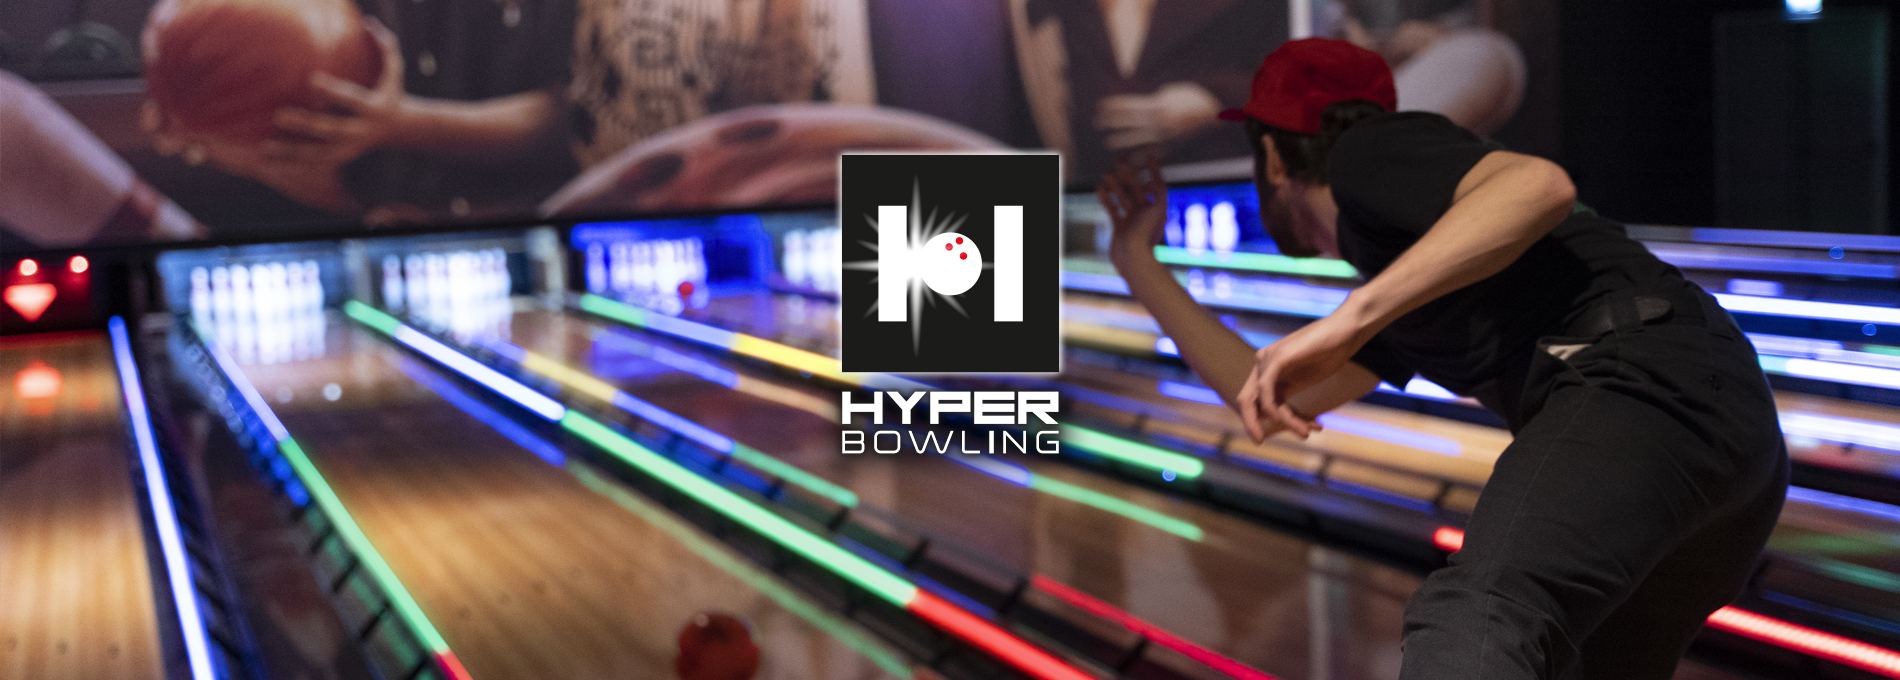 QubicaAMF Bowling HyperBowling Bowl Expo 2019 Banner